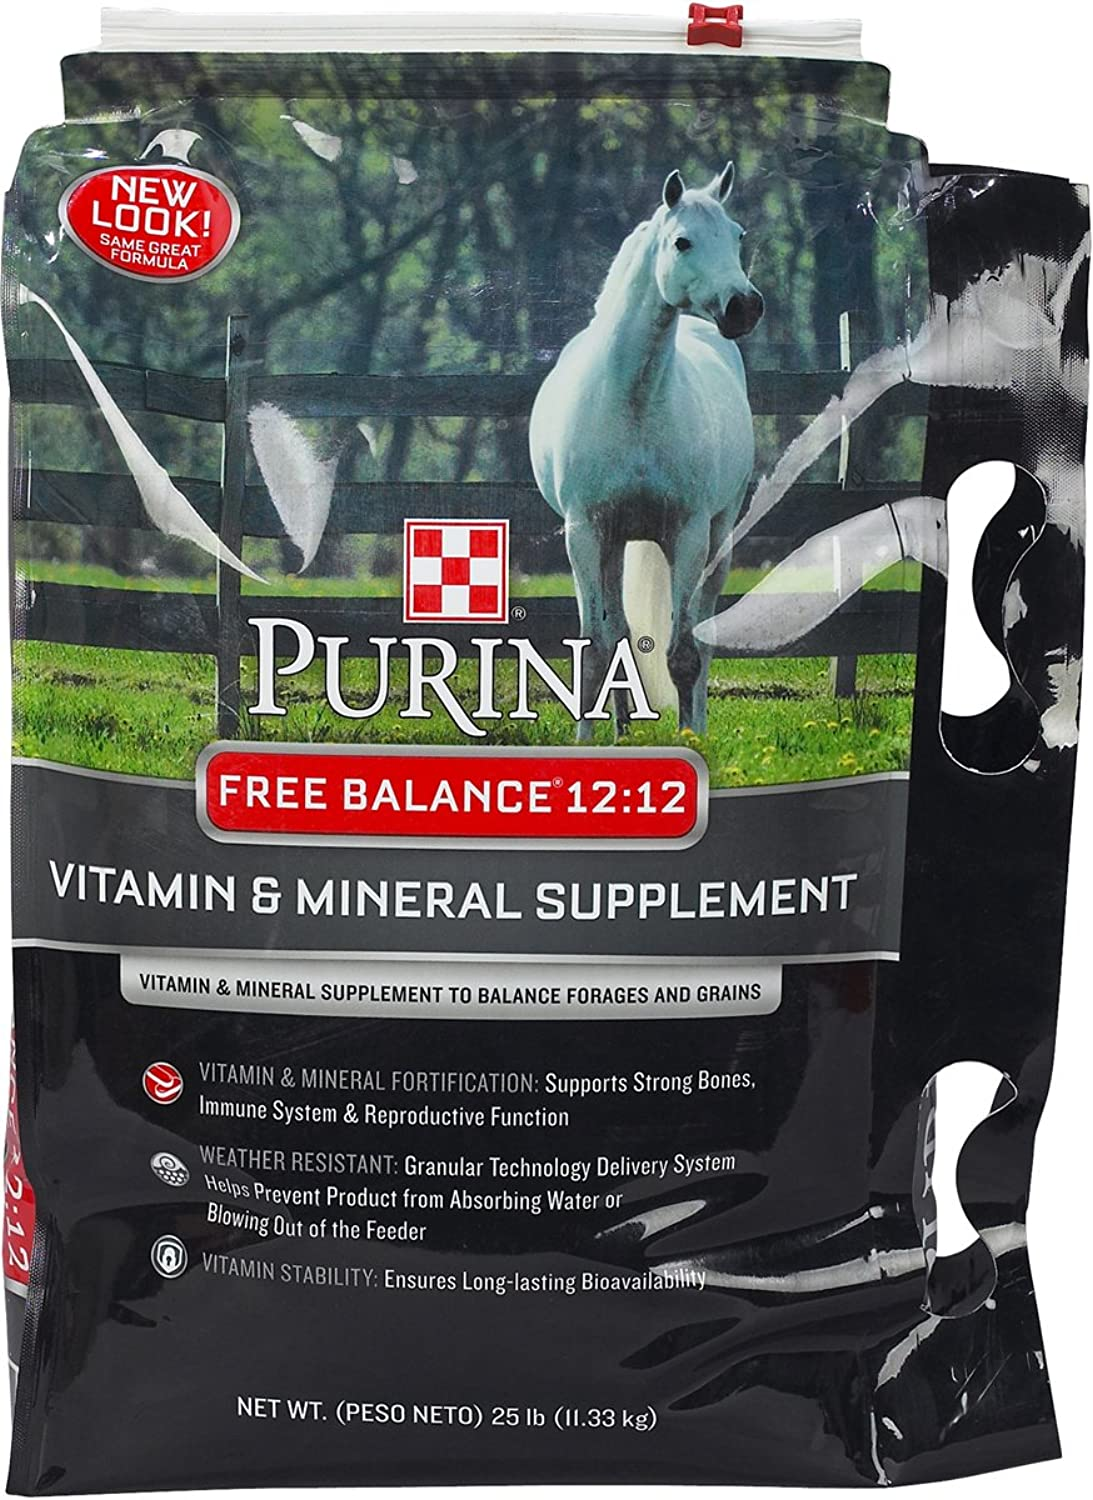 Purina Animal Nutrition Purina Free Balance 12 12 Horse Supplement 25lbs